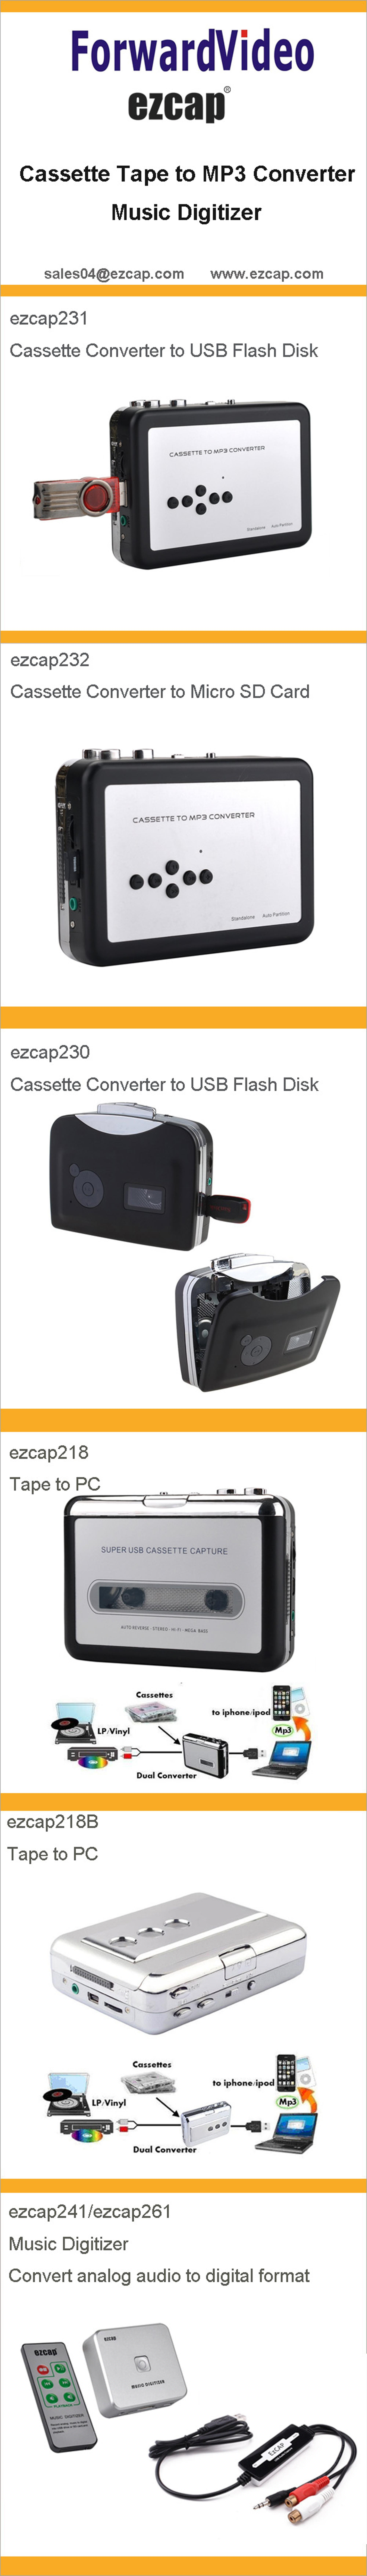 USB cassette player Recorder and Covnerter audio capture Tape to MP3 ezcap228